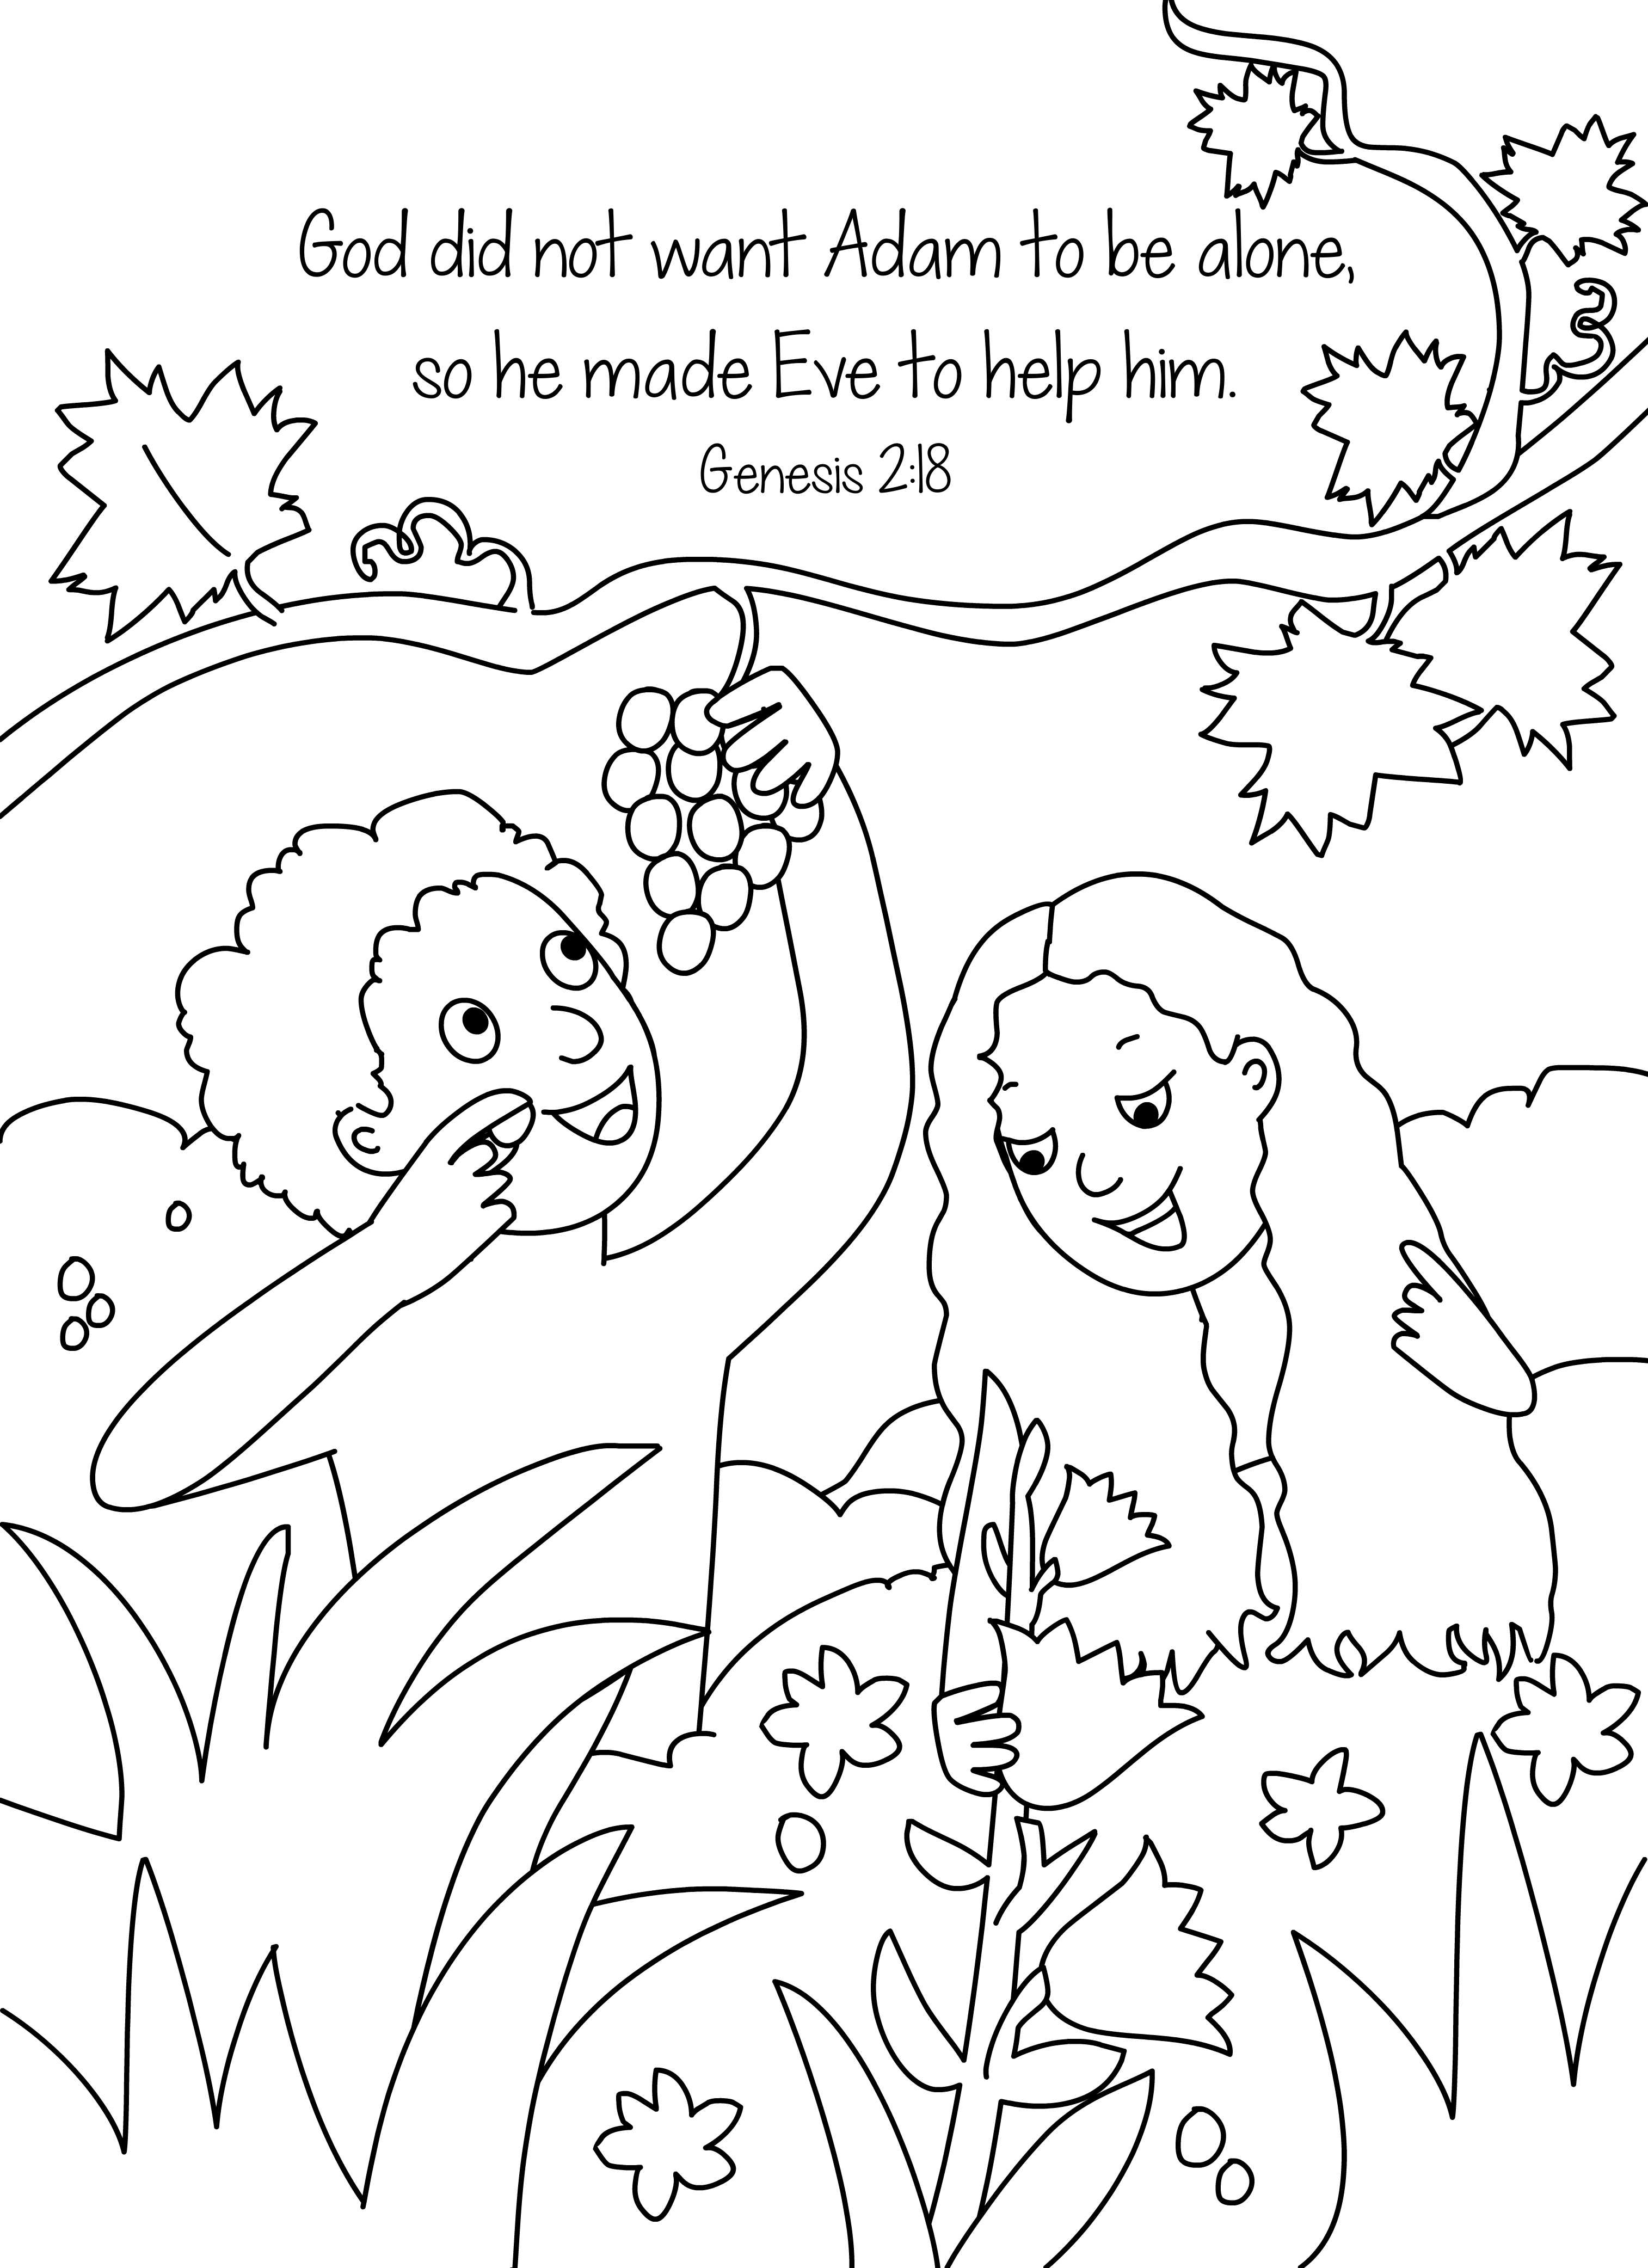 adam and eve coloring page adam and eve coloring pages for kids coloring home coloring adam page and eve